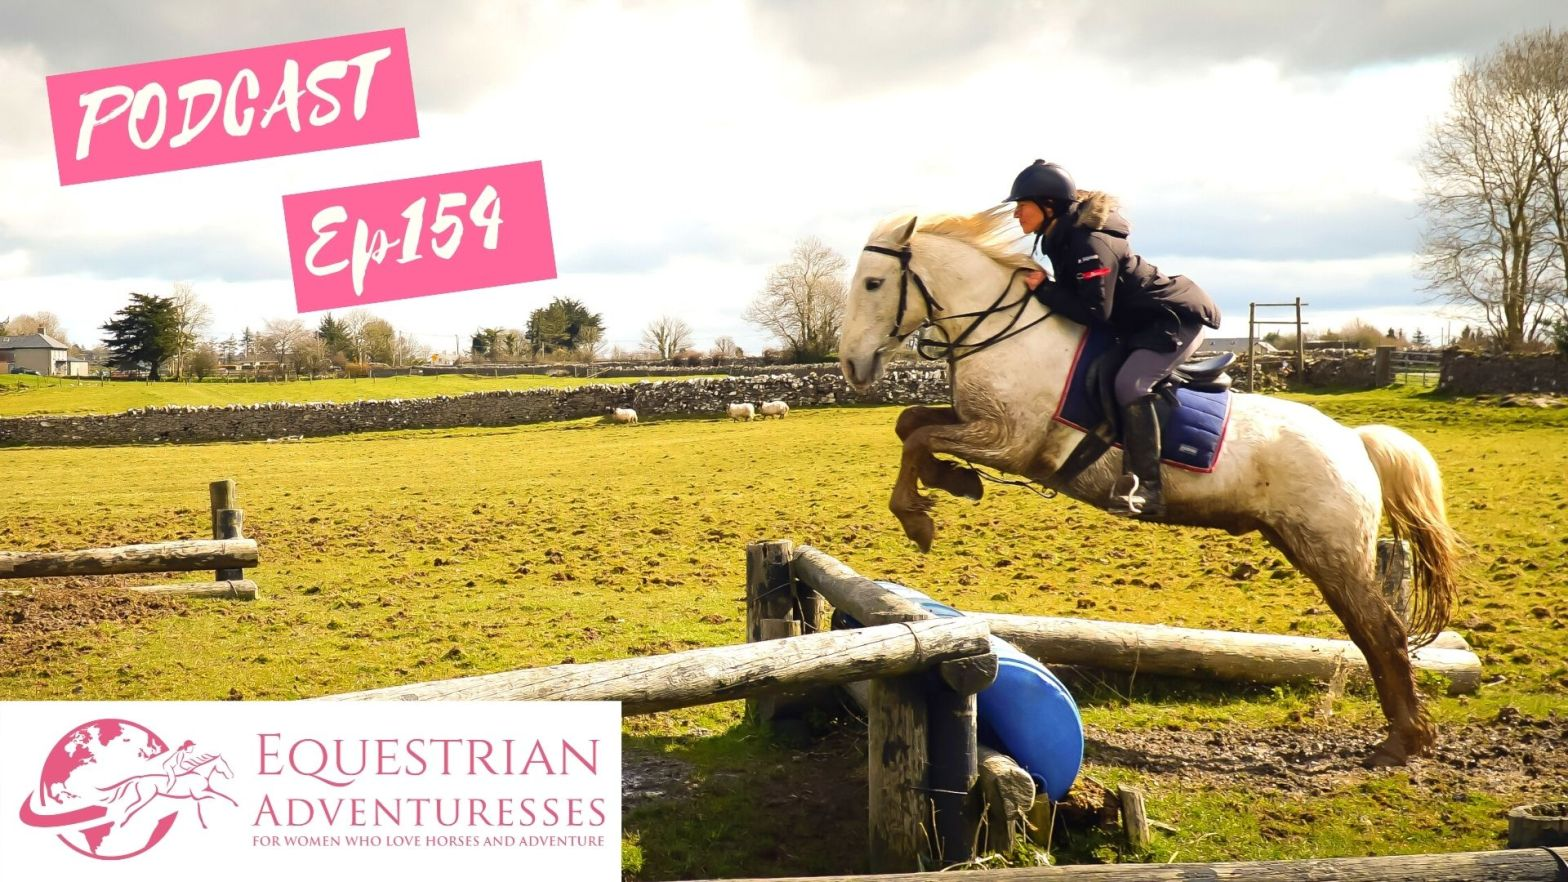 Equestrian Adventuresses Travel and Horse Podcast Ep 154 - Riding Every Breeds